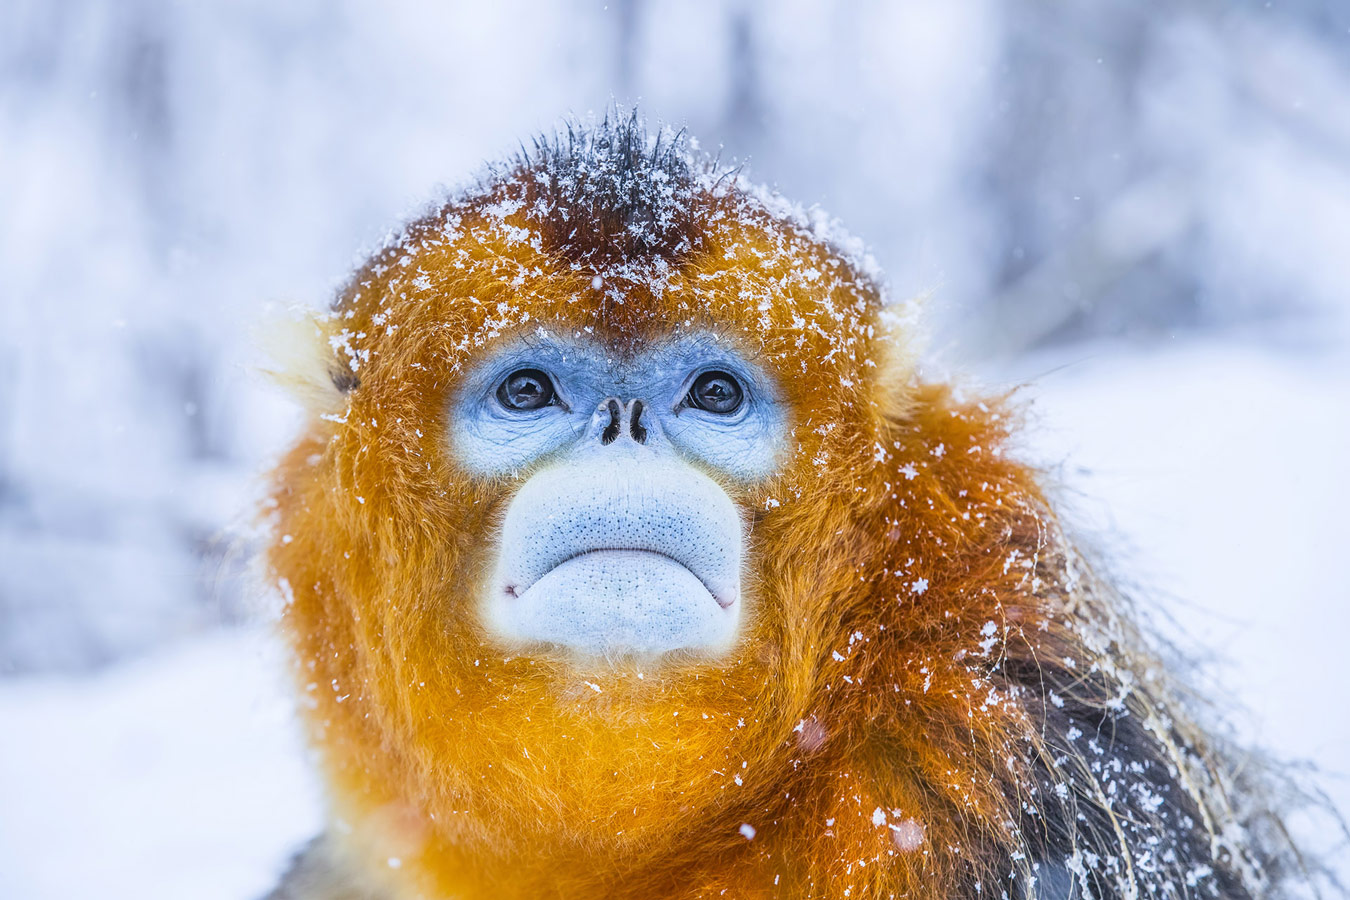 Golden monkey, © Mingjian Yu, Wuhan, China, Highly Honored Wildlife, Nature's Best Photography Asia